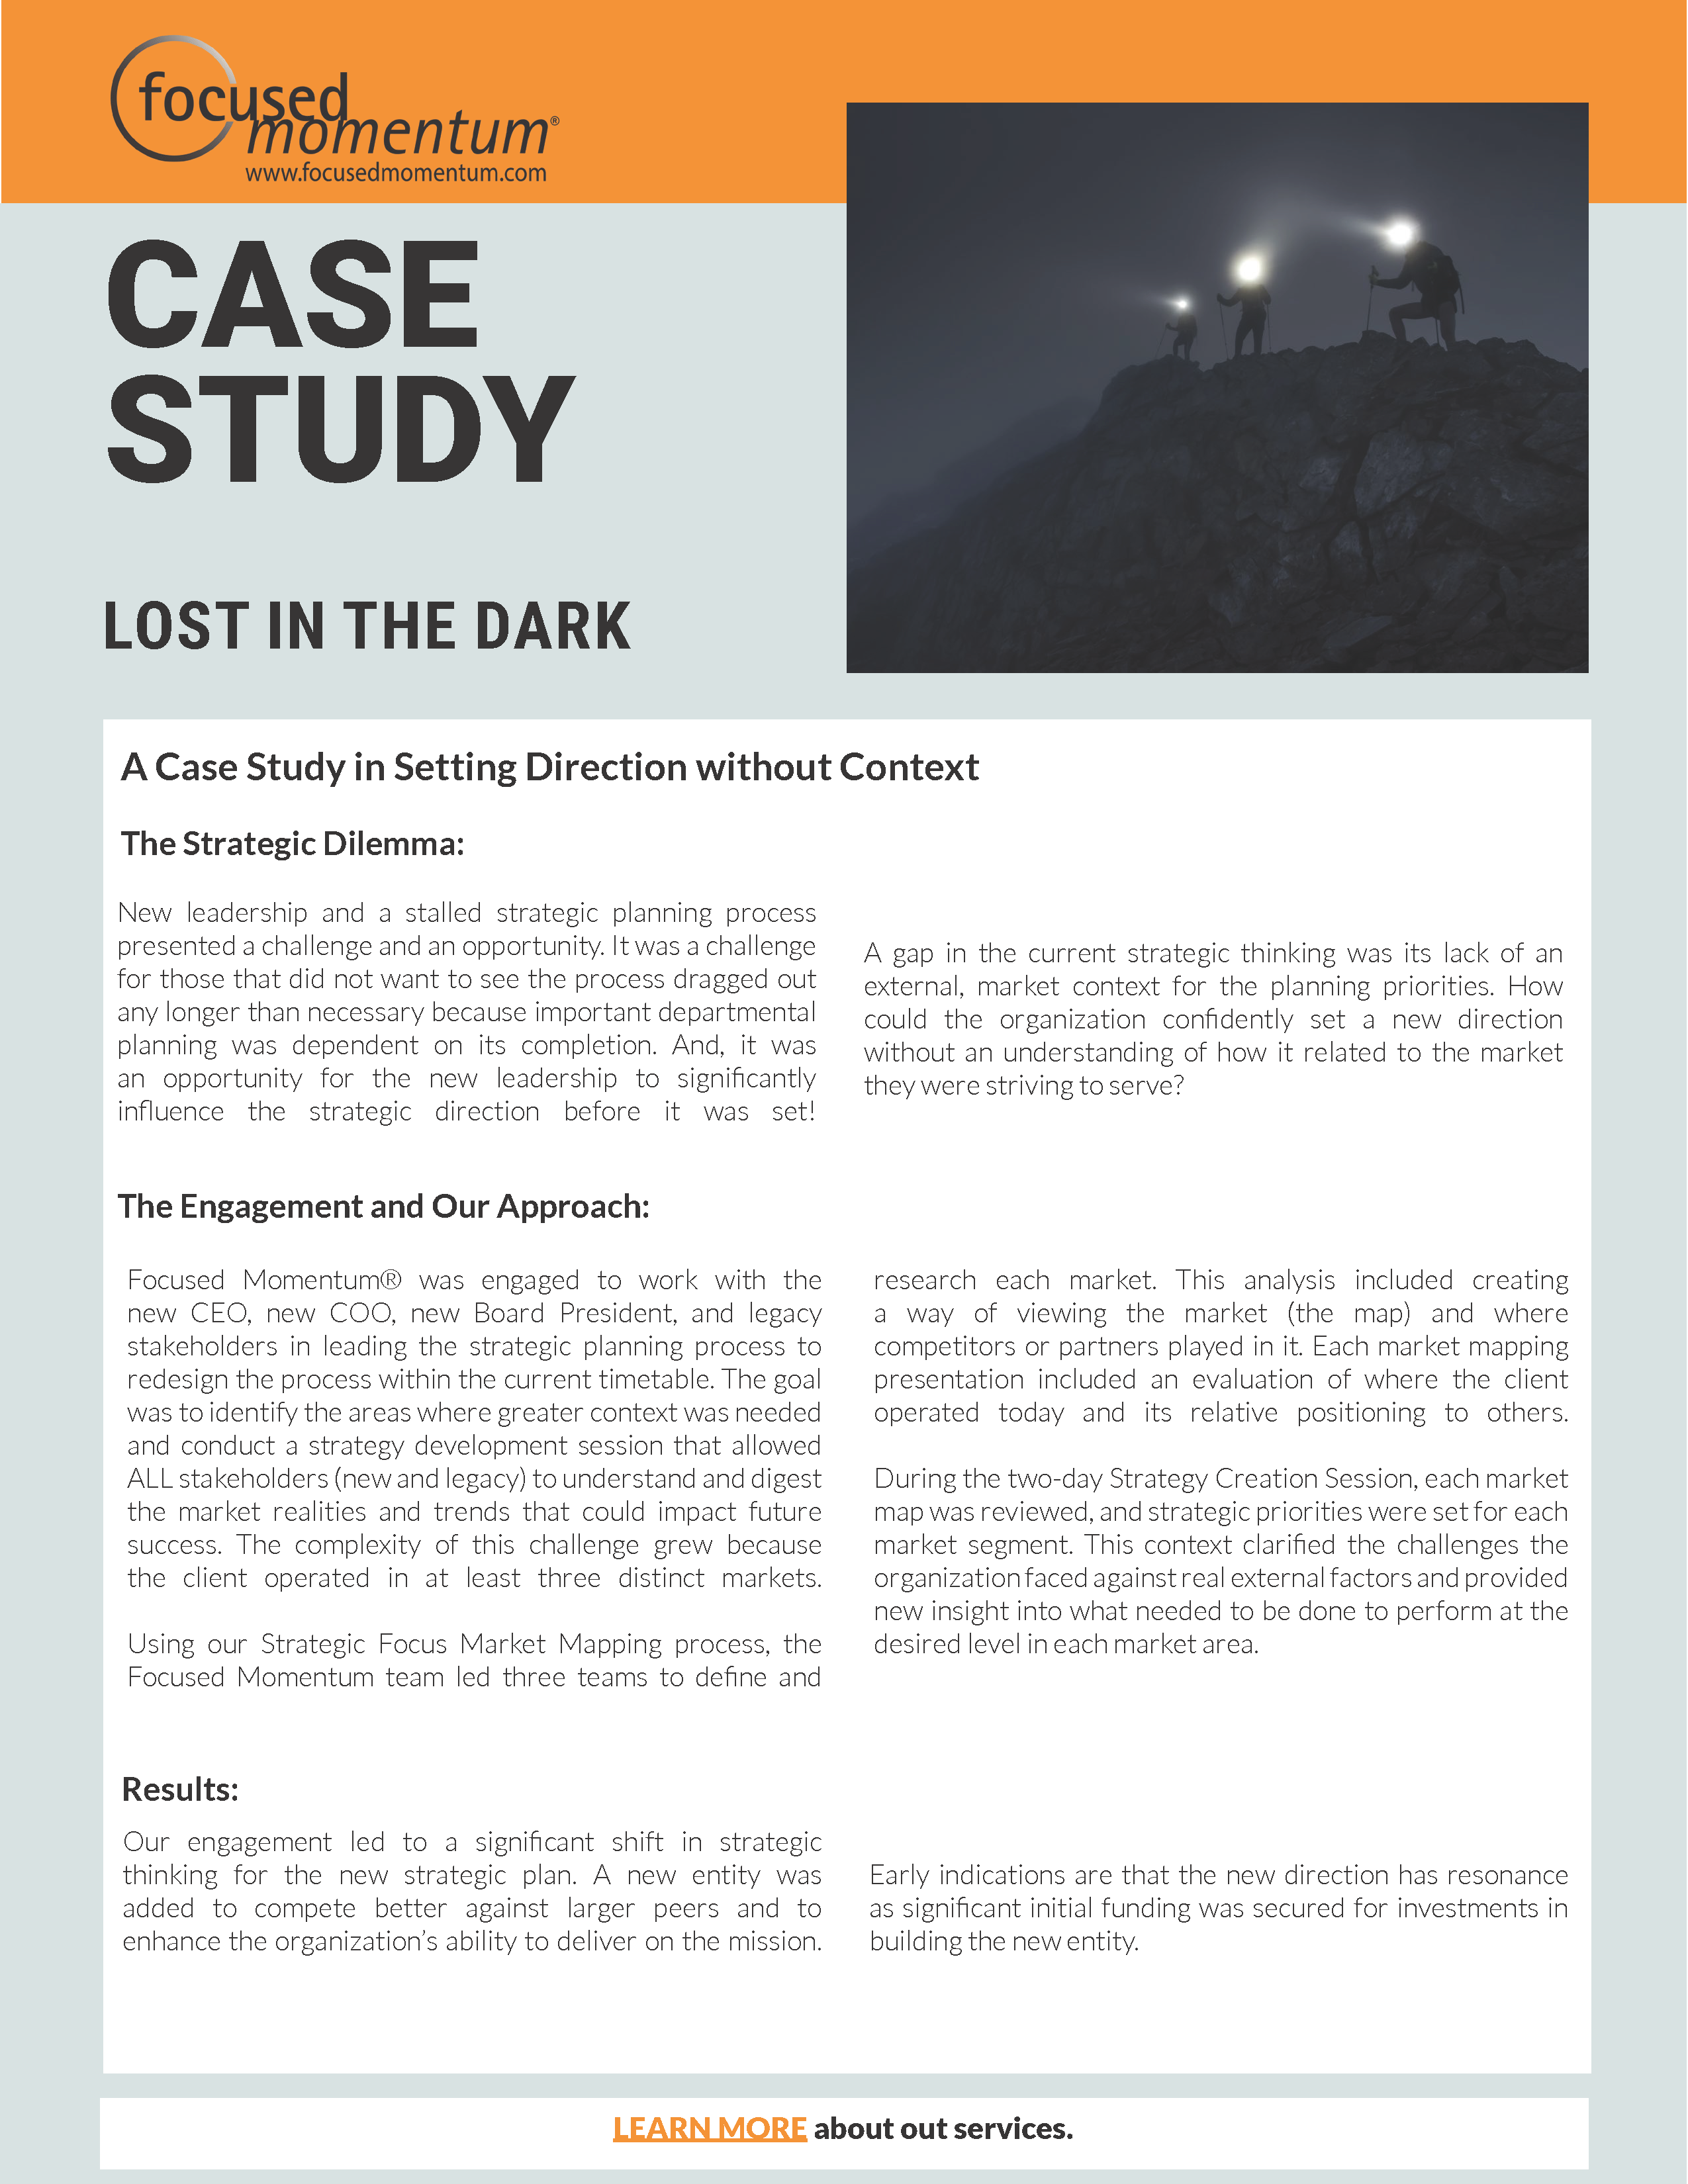 Lost in the Dark Aug 2020